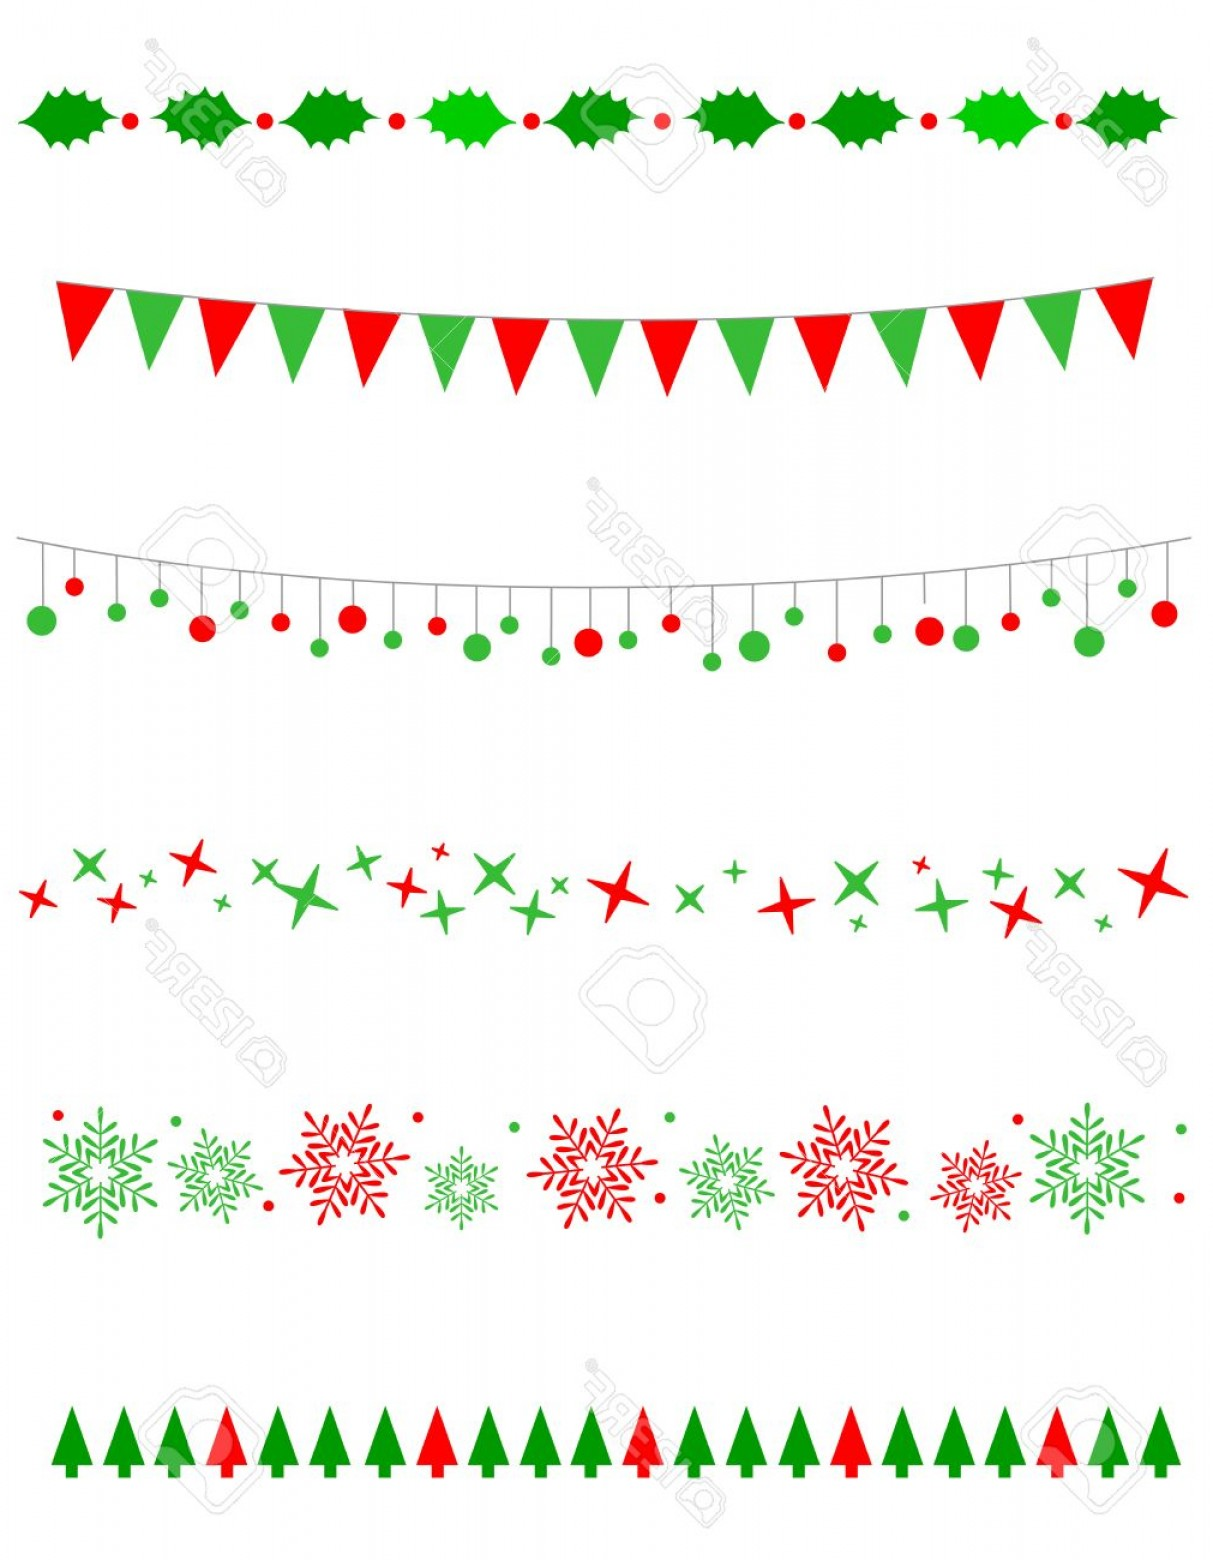 Christmas Divider Vector: Photostock Vector Collection On Christmas Borders Divider Graphics Including Holly Border Bulbs Lights Pattern Christm